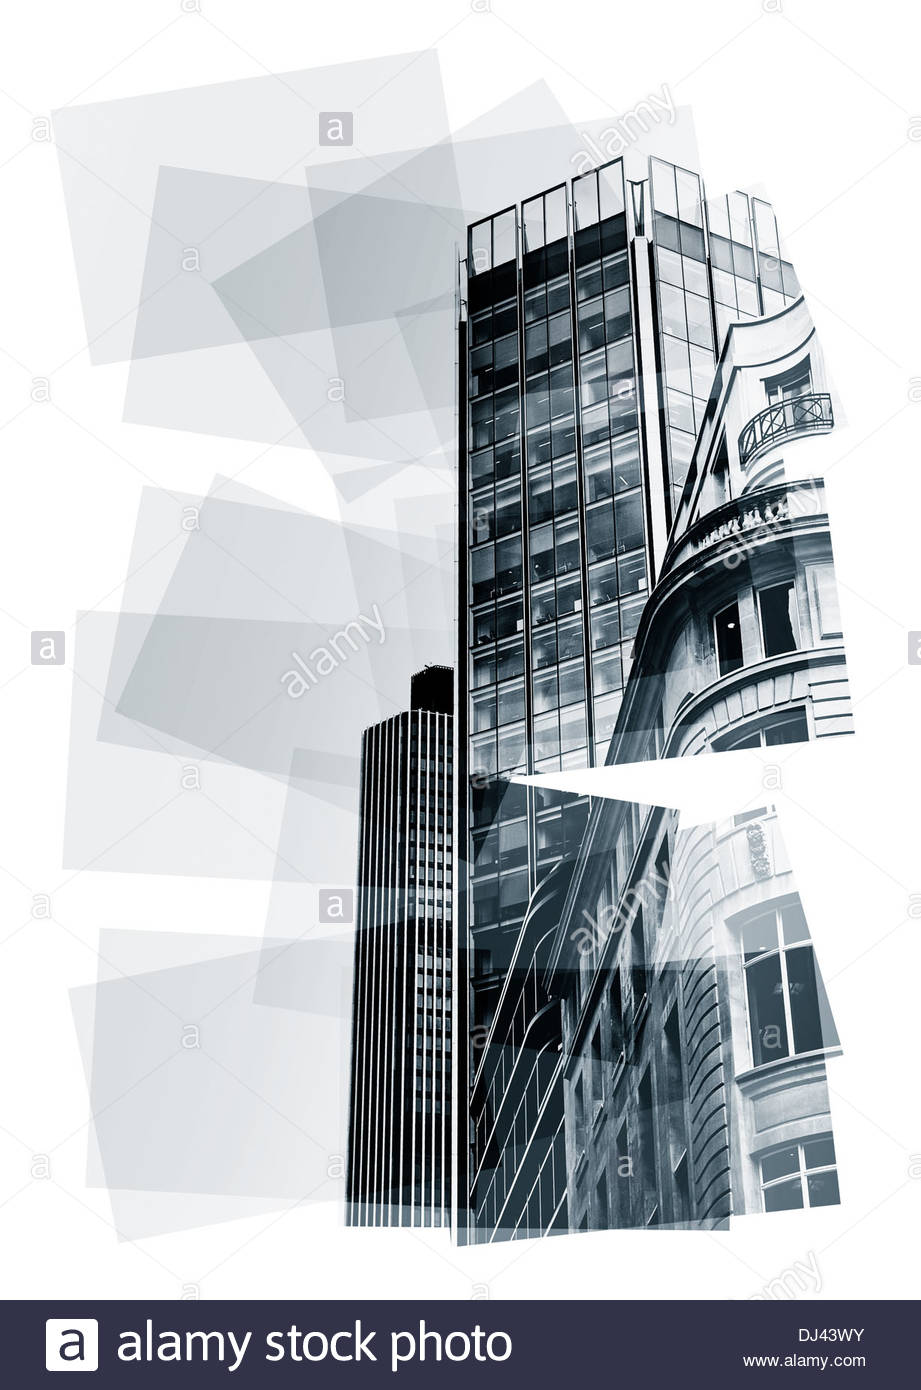 buildings abstract - Stock Image